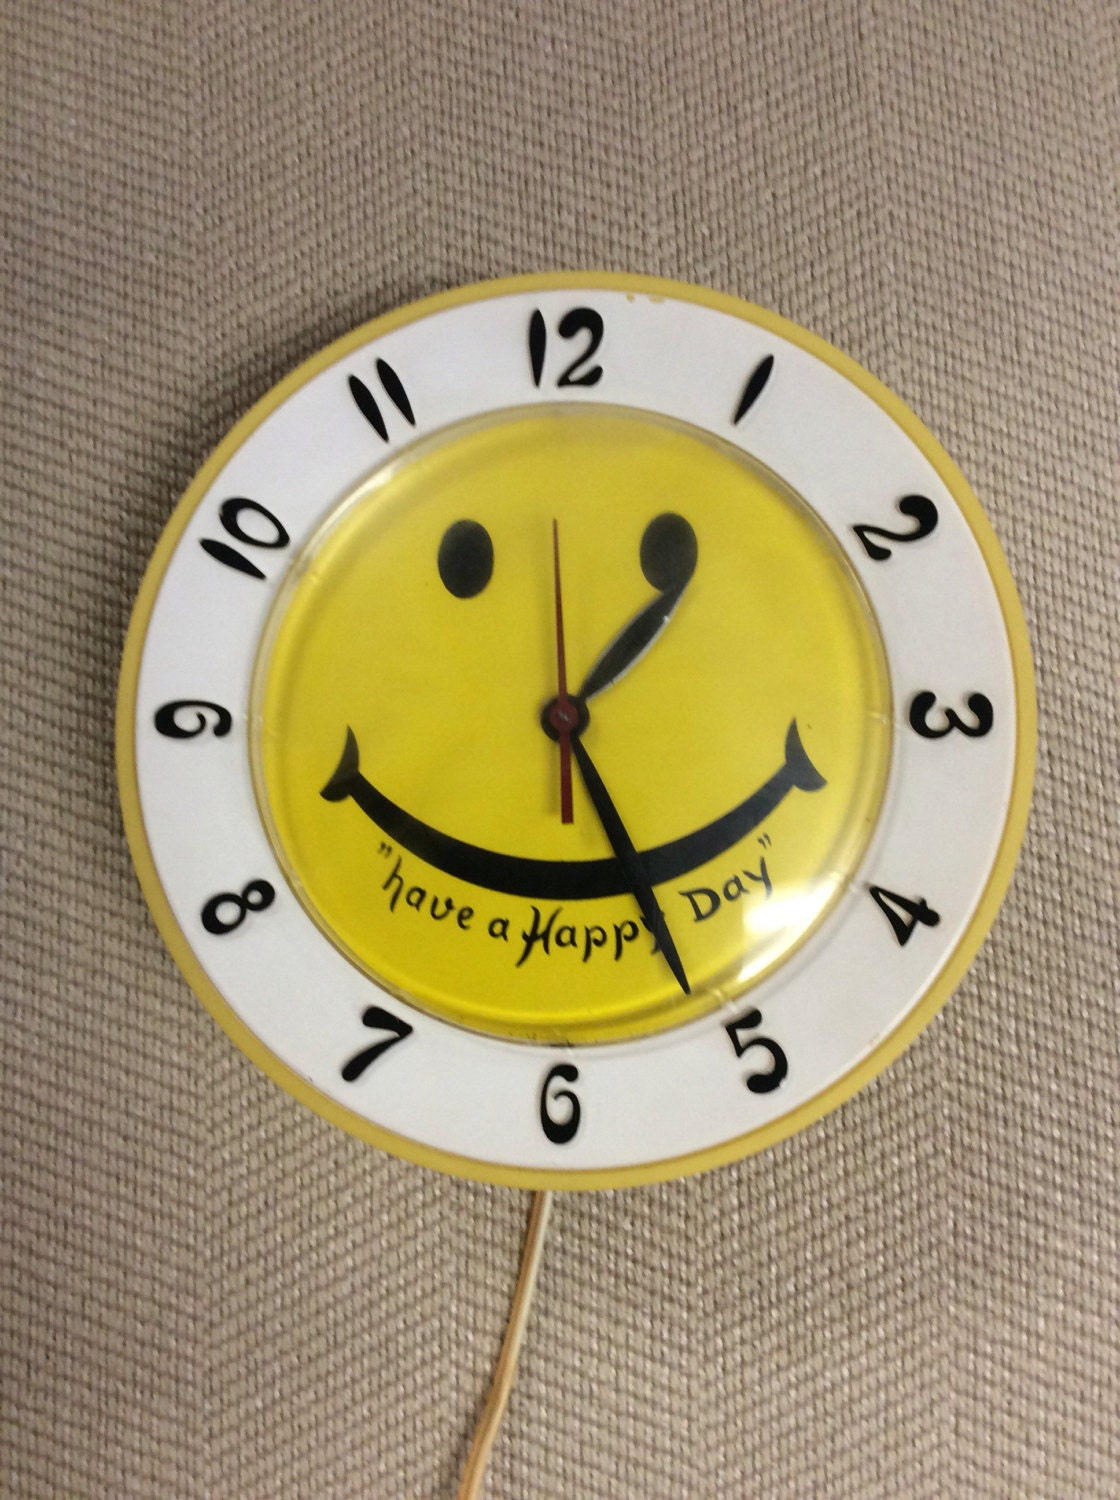 Vintage Electric Have a Happy Day/Yellow Smile face Clock /